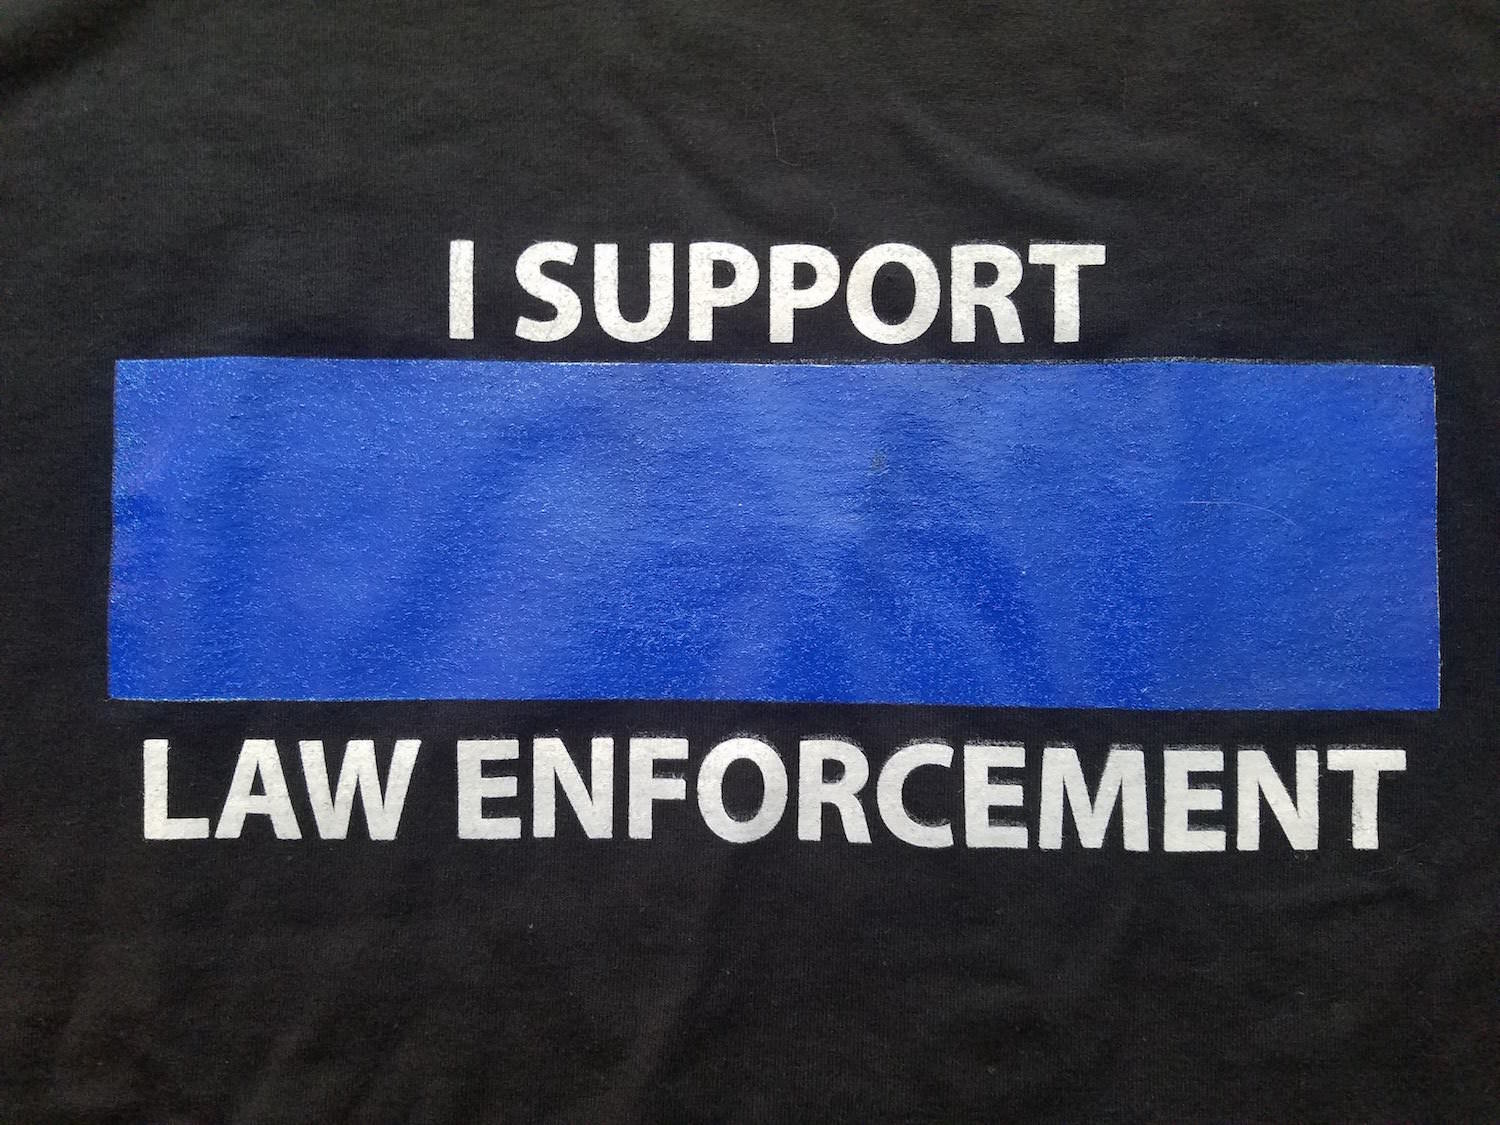 Have you gotten your I support law enforcement t-shirt there is still time